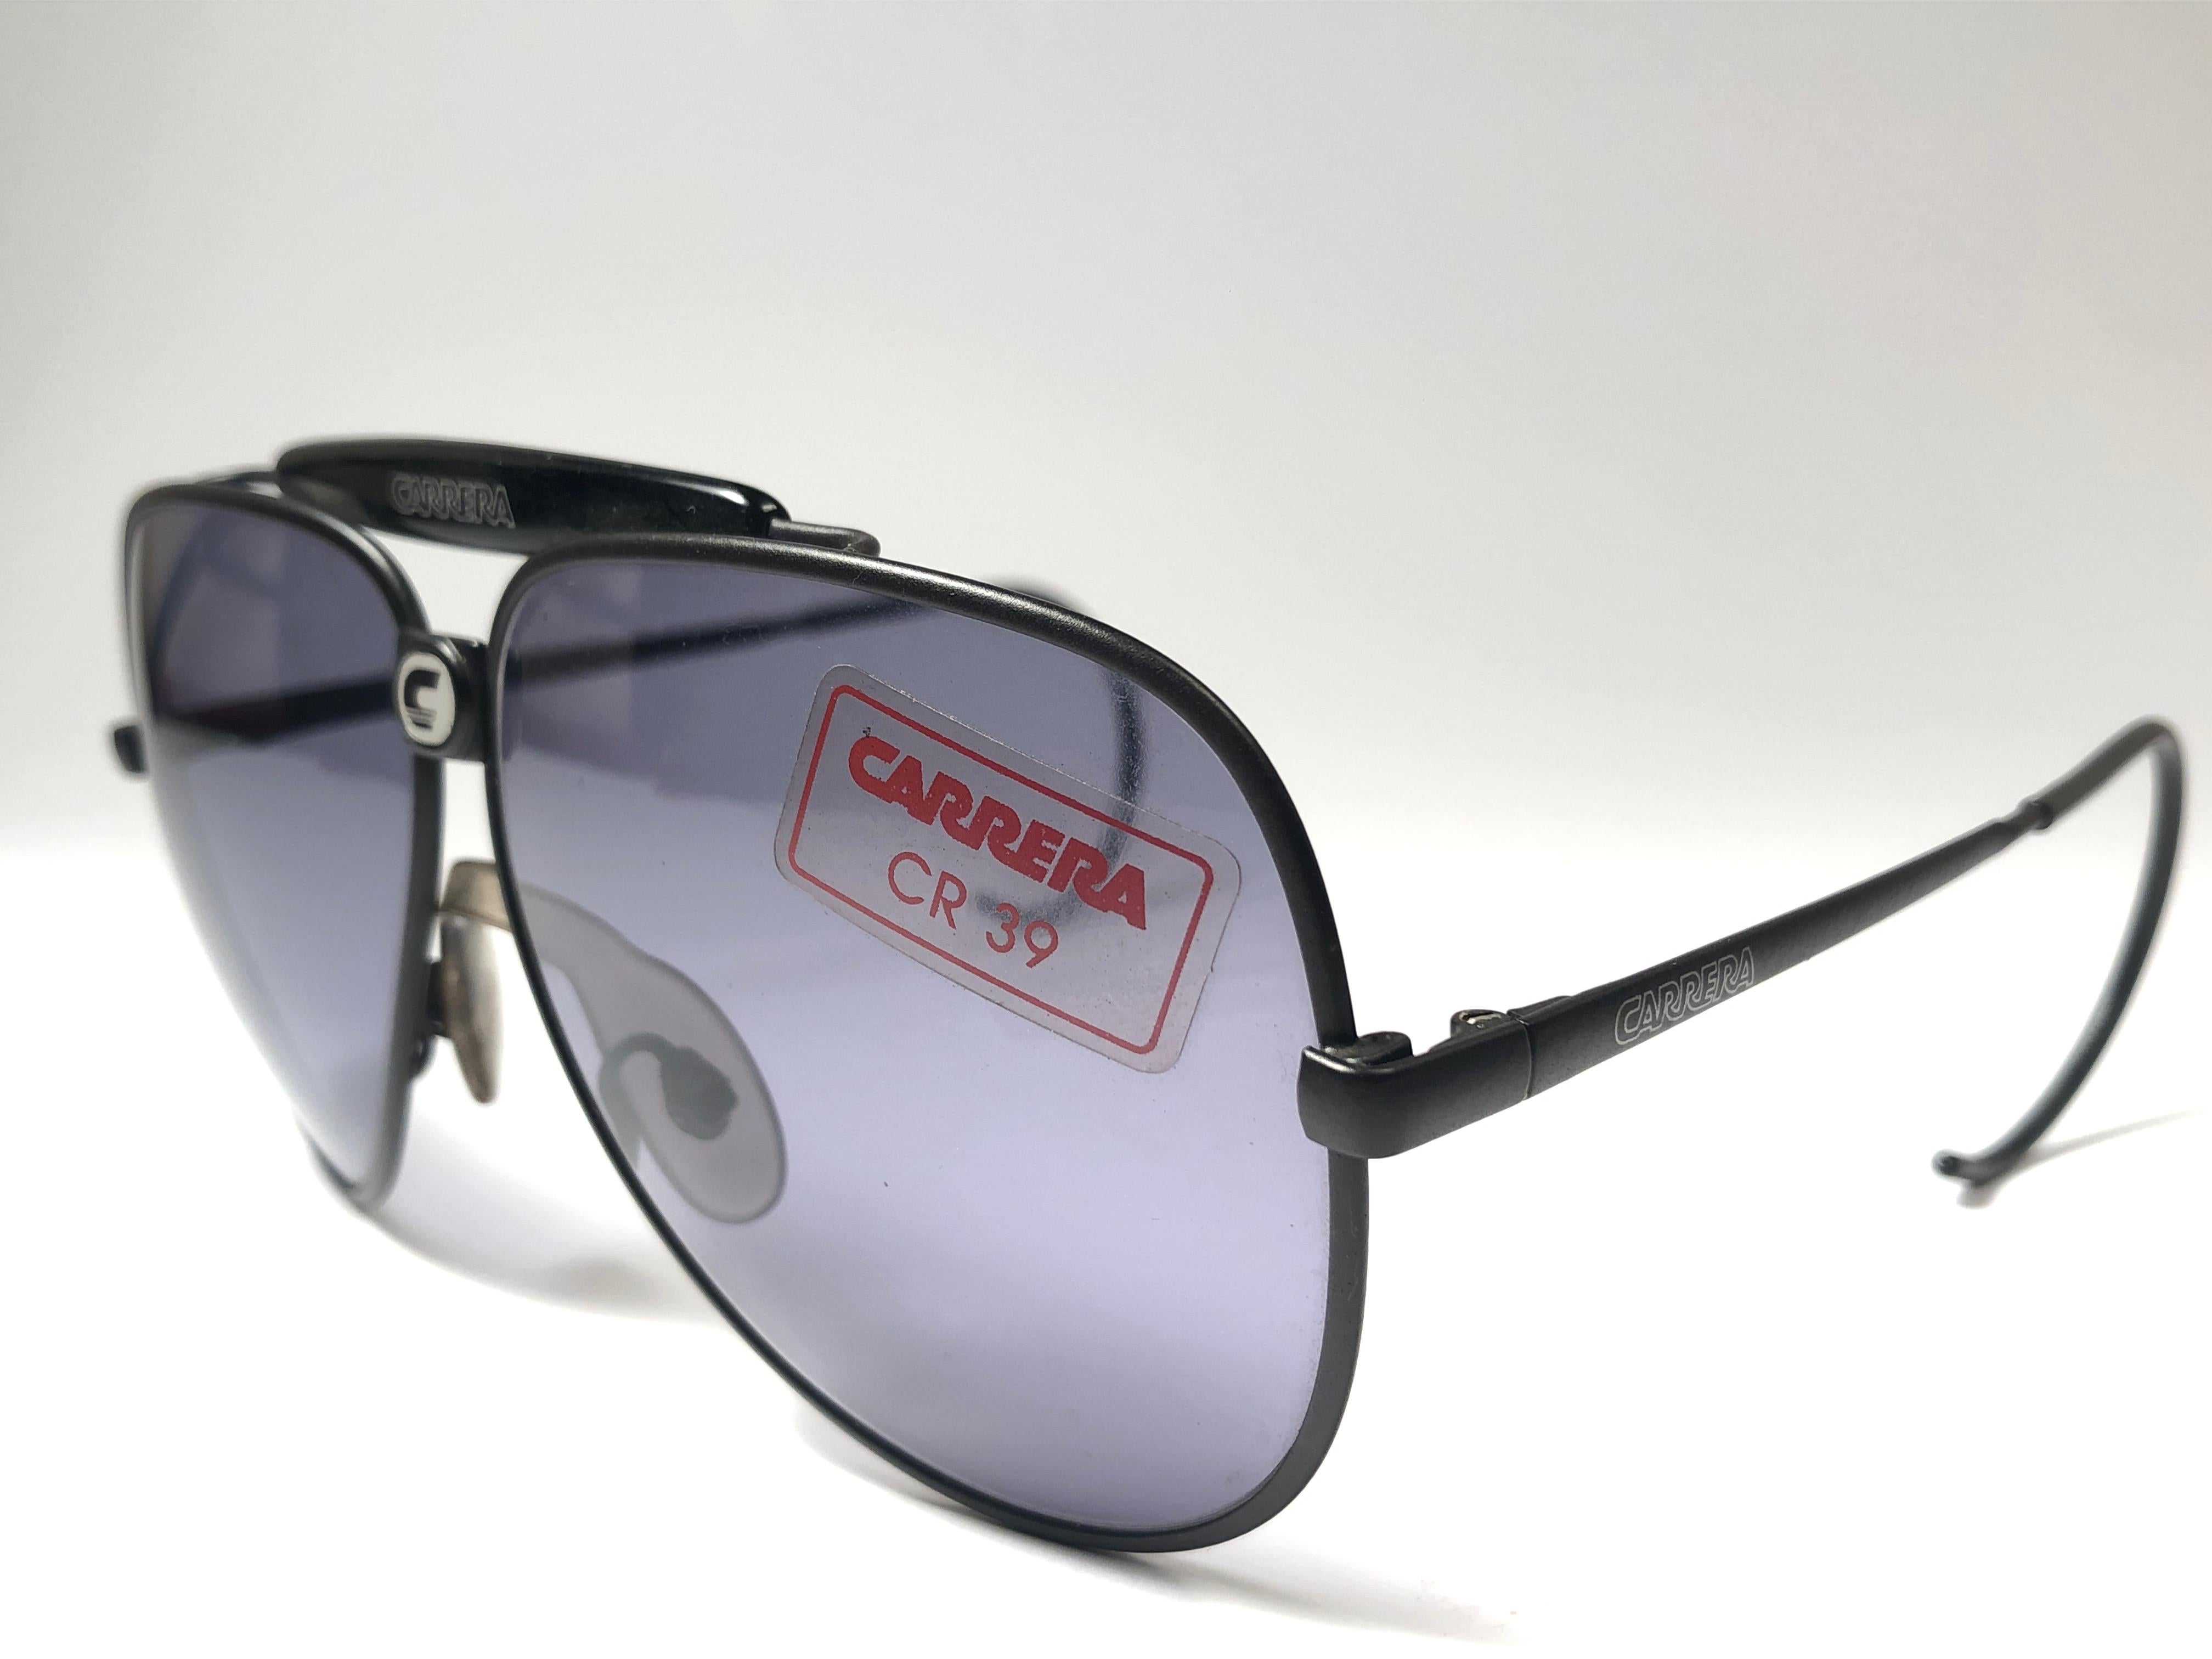 71a30b2d79cff New Vintage Carrera Aviator Oversized 5543 Black Large 1970 s Sunglasses  Austria For Sale at 1stdibs